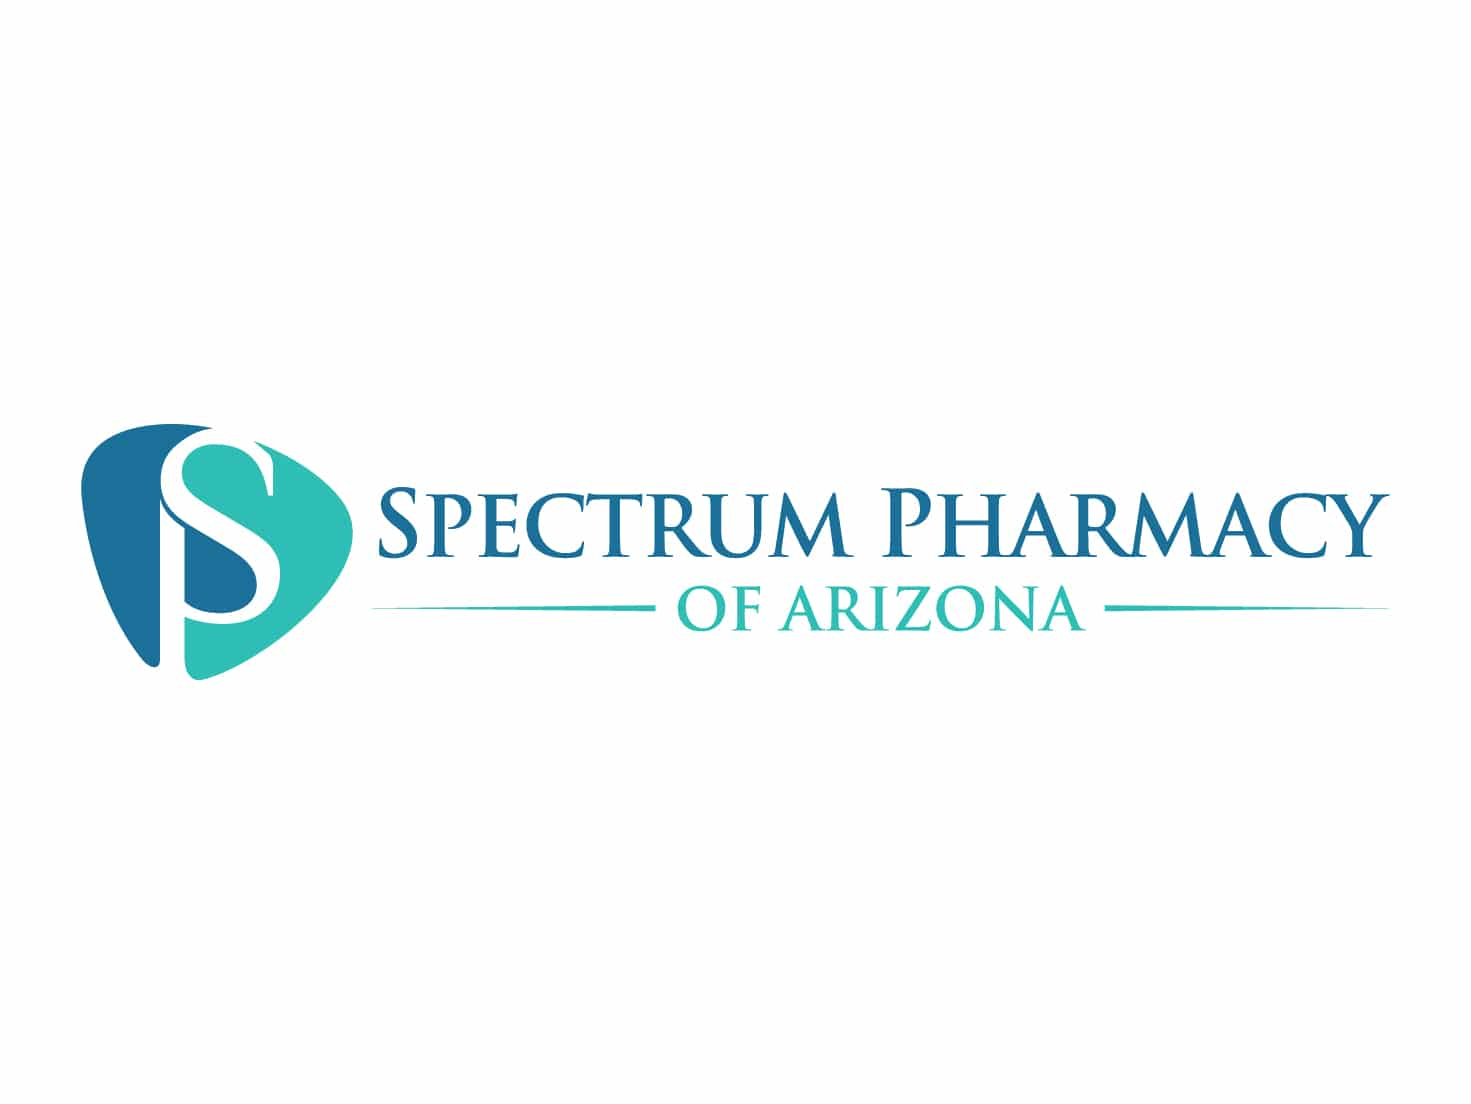 Spectrum Pharmacy